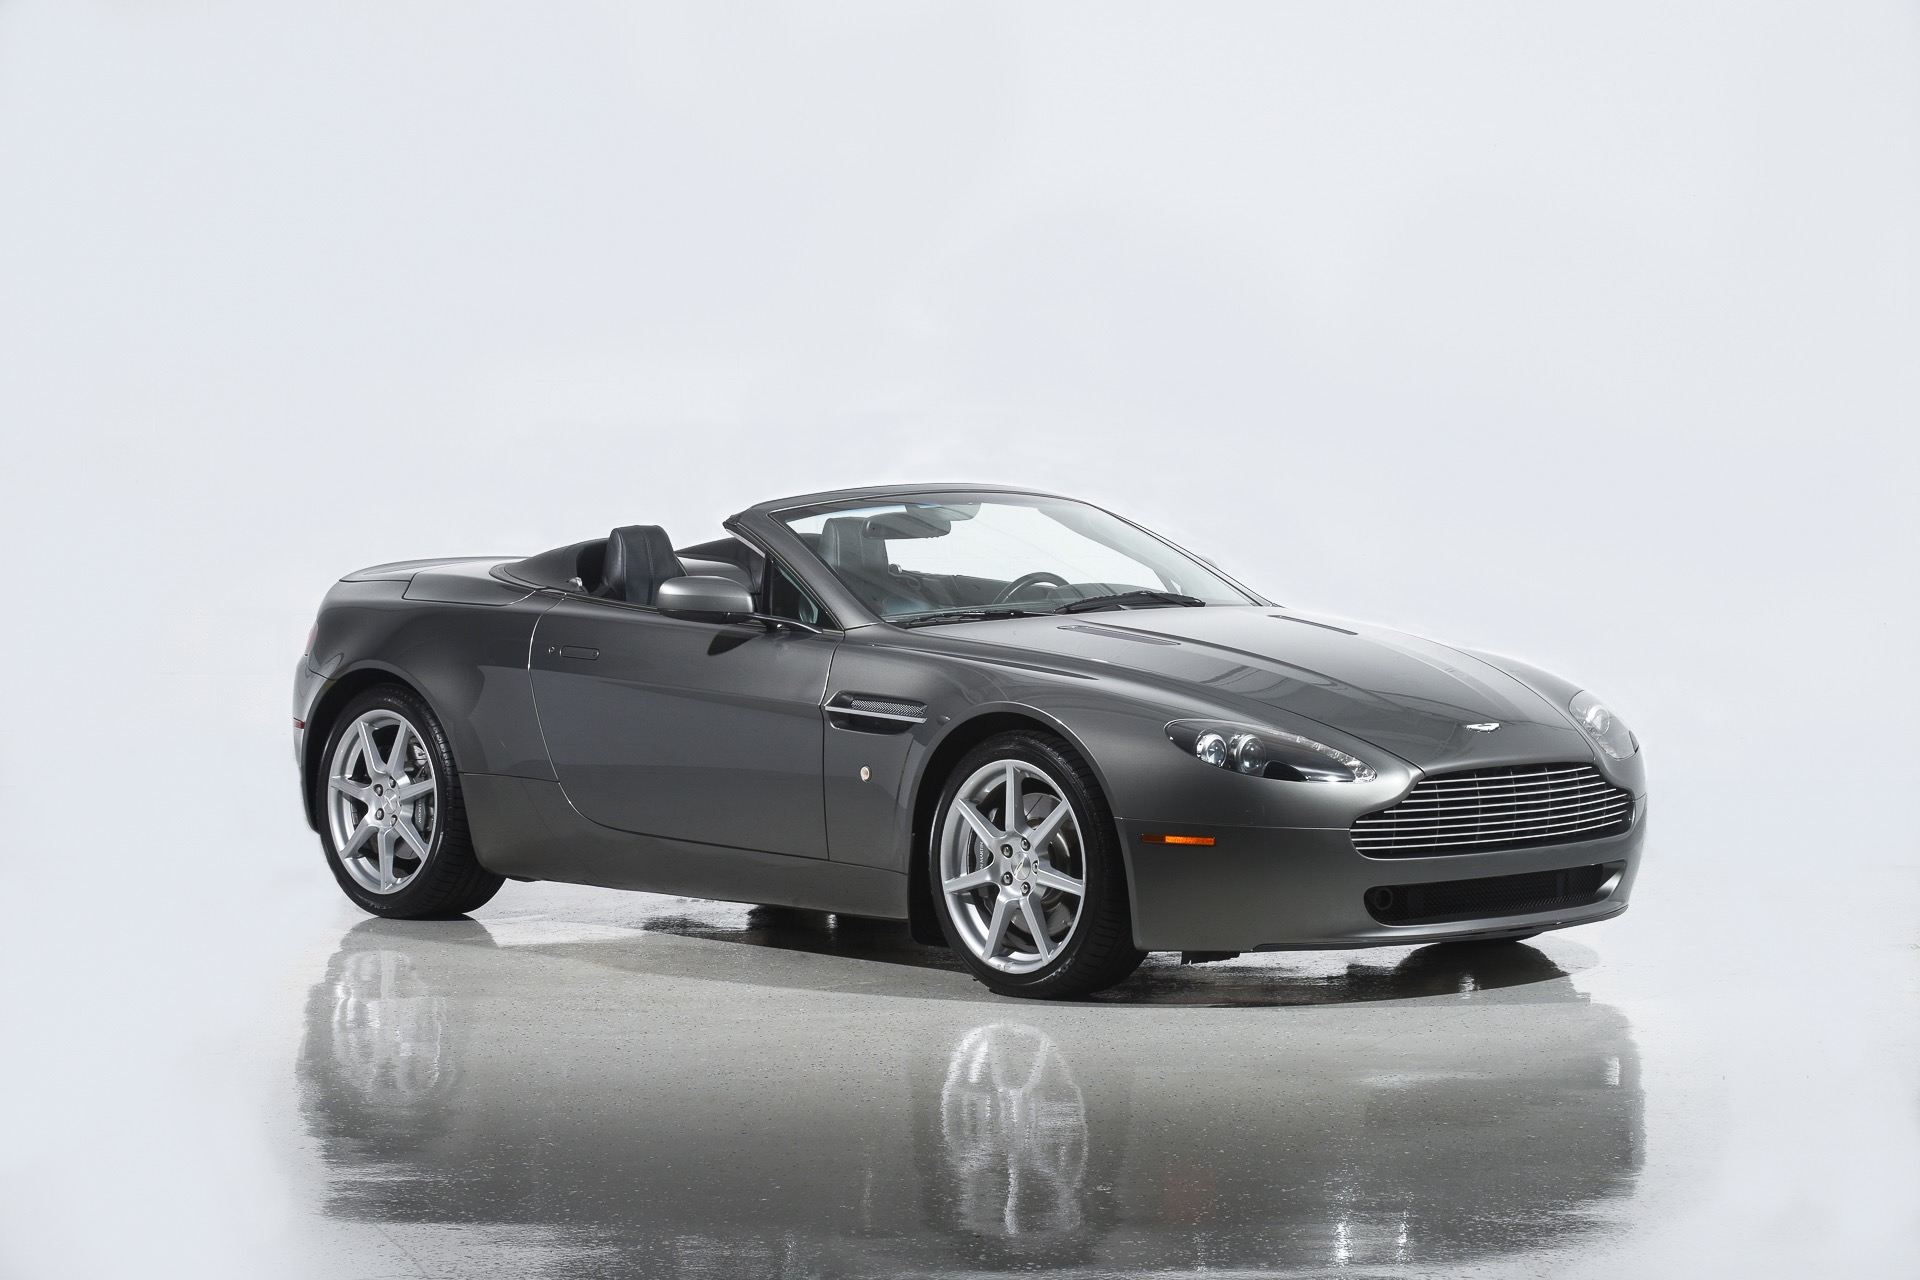 Used 2008 Aston Martin V8 Vantage Roadster For Sale 37 900 Motorcar Classics Stock 1125